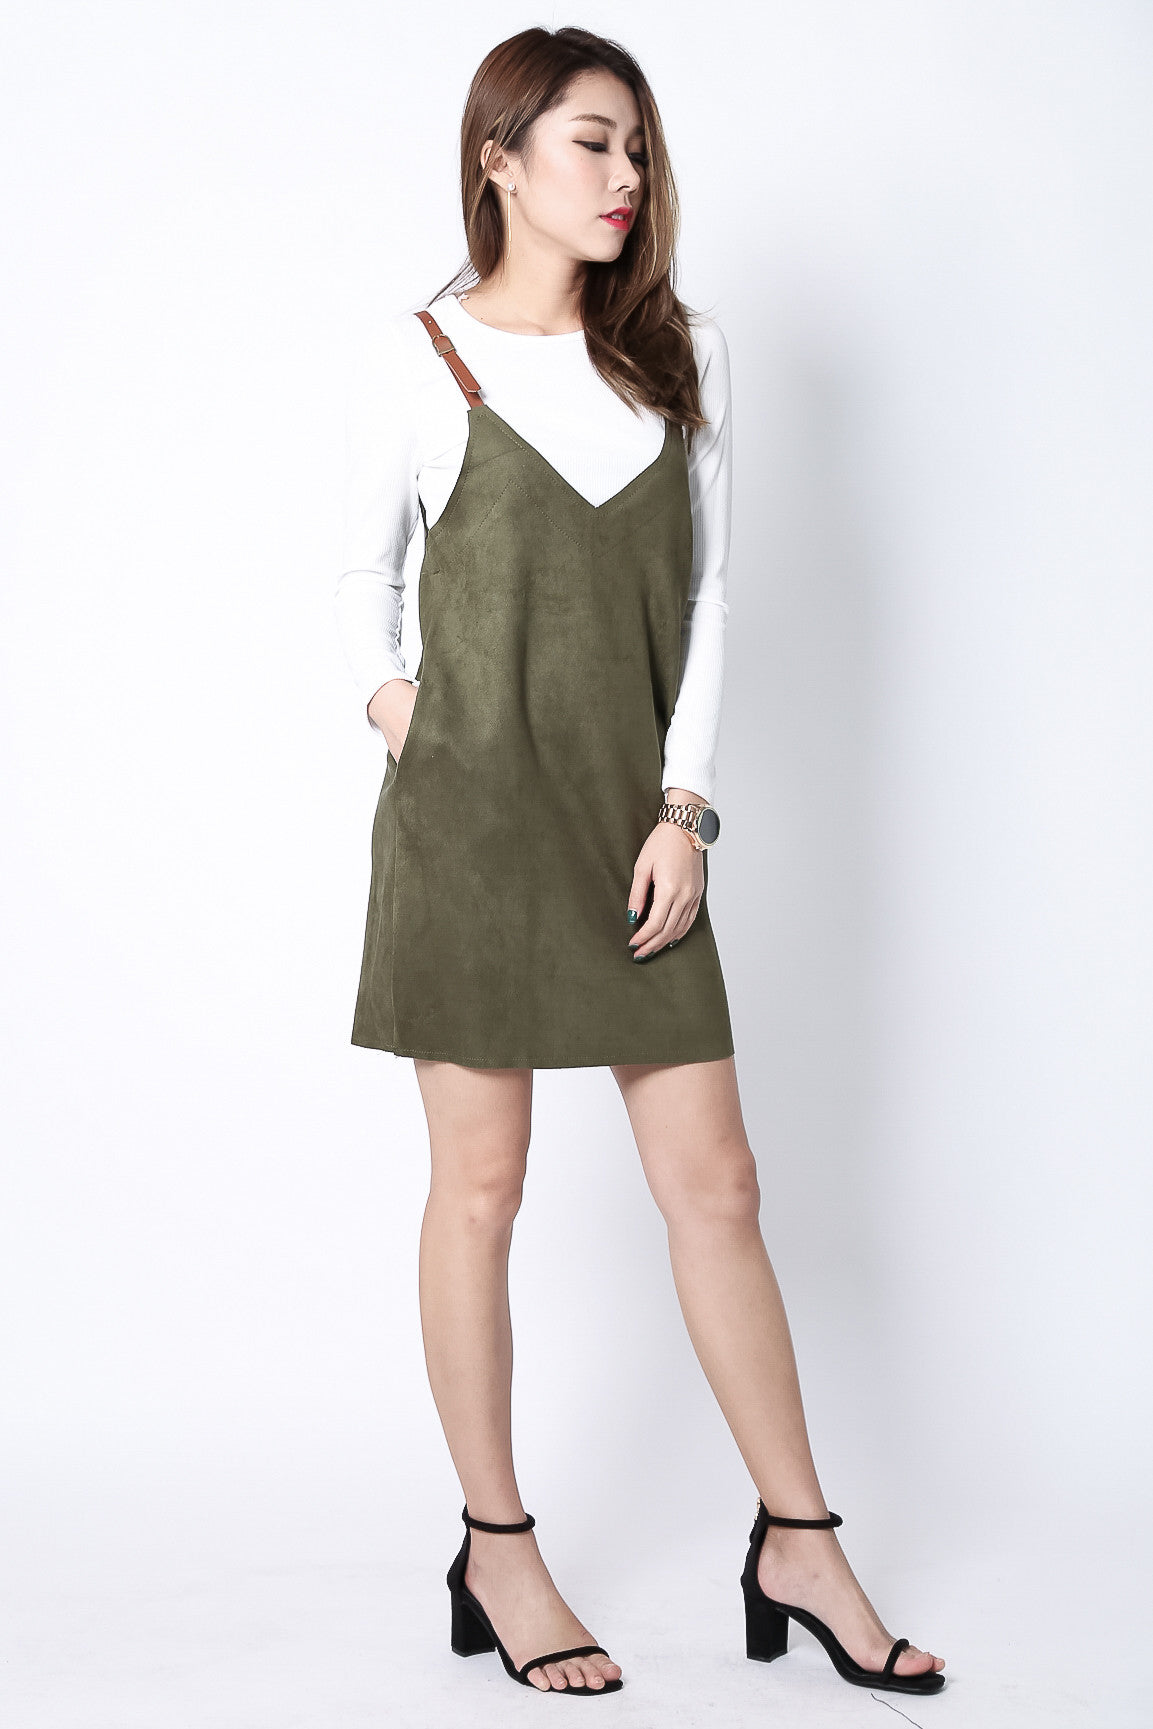 (RESTOCKED) KEEP THE FAITH 2PC DRESS SET IN OLIVE - TOPAZETTE